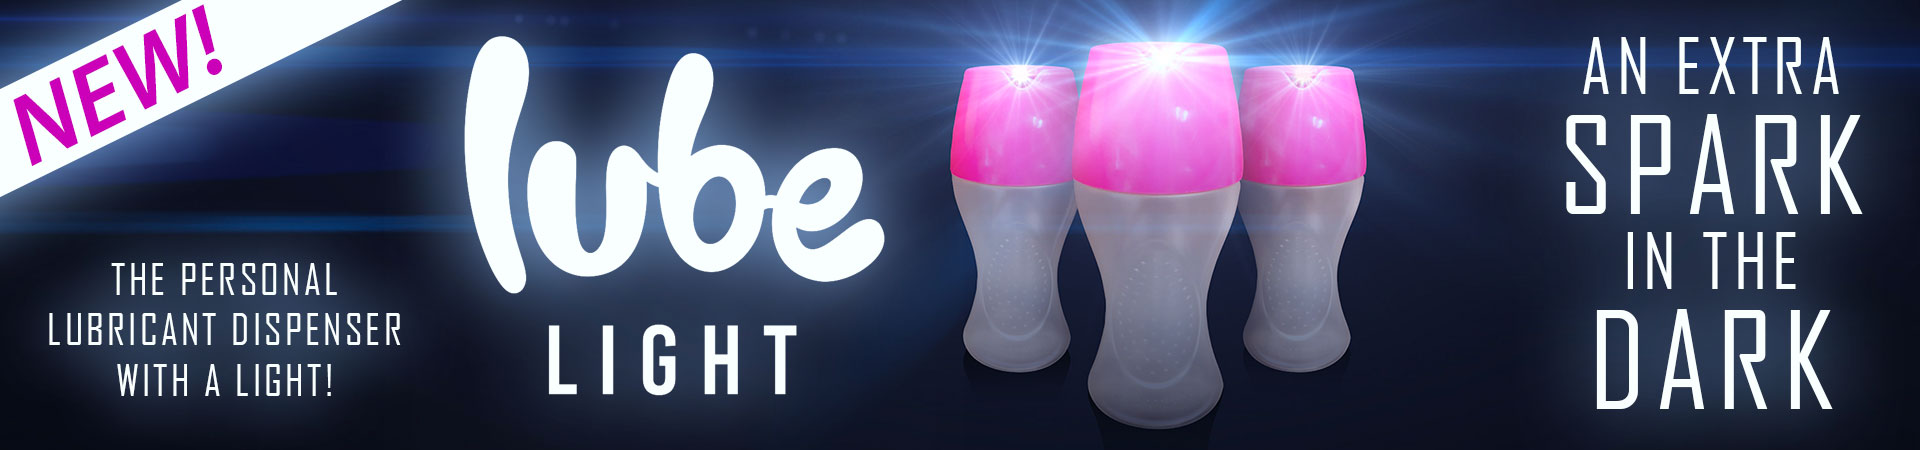 Add An Extra Spark In The Dark With The All New LUBE LIGHT Personal Lubricant Dispenser!